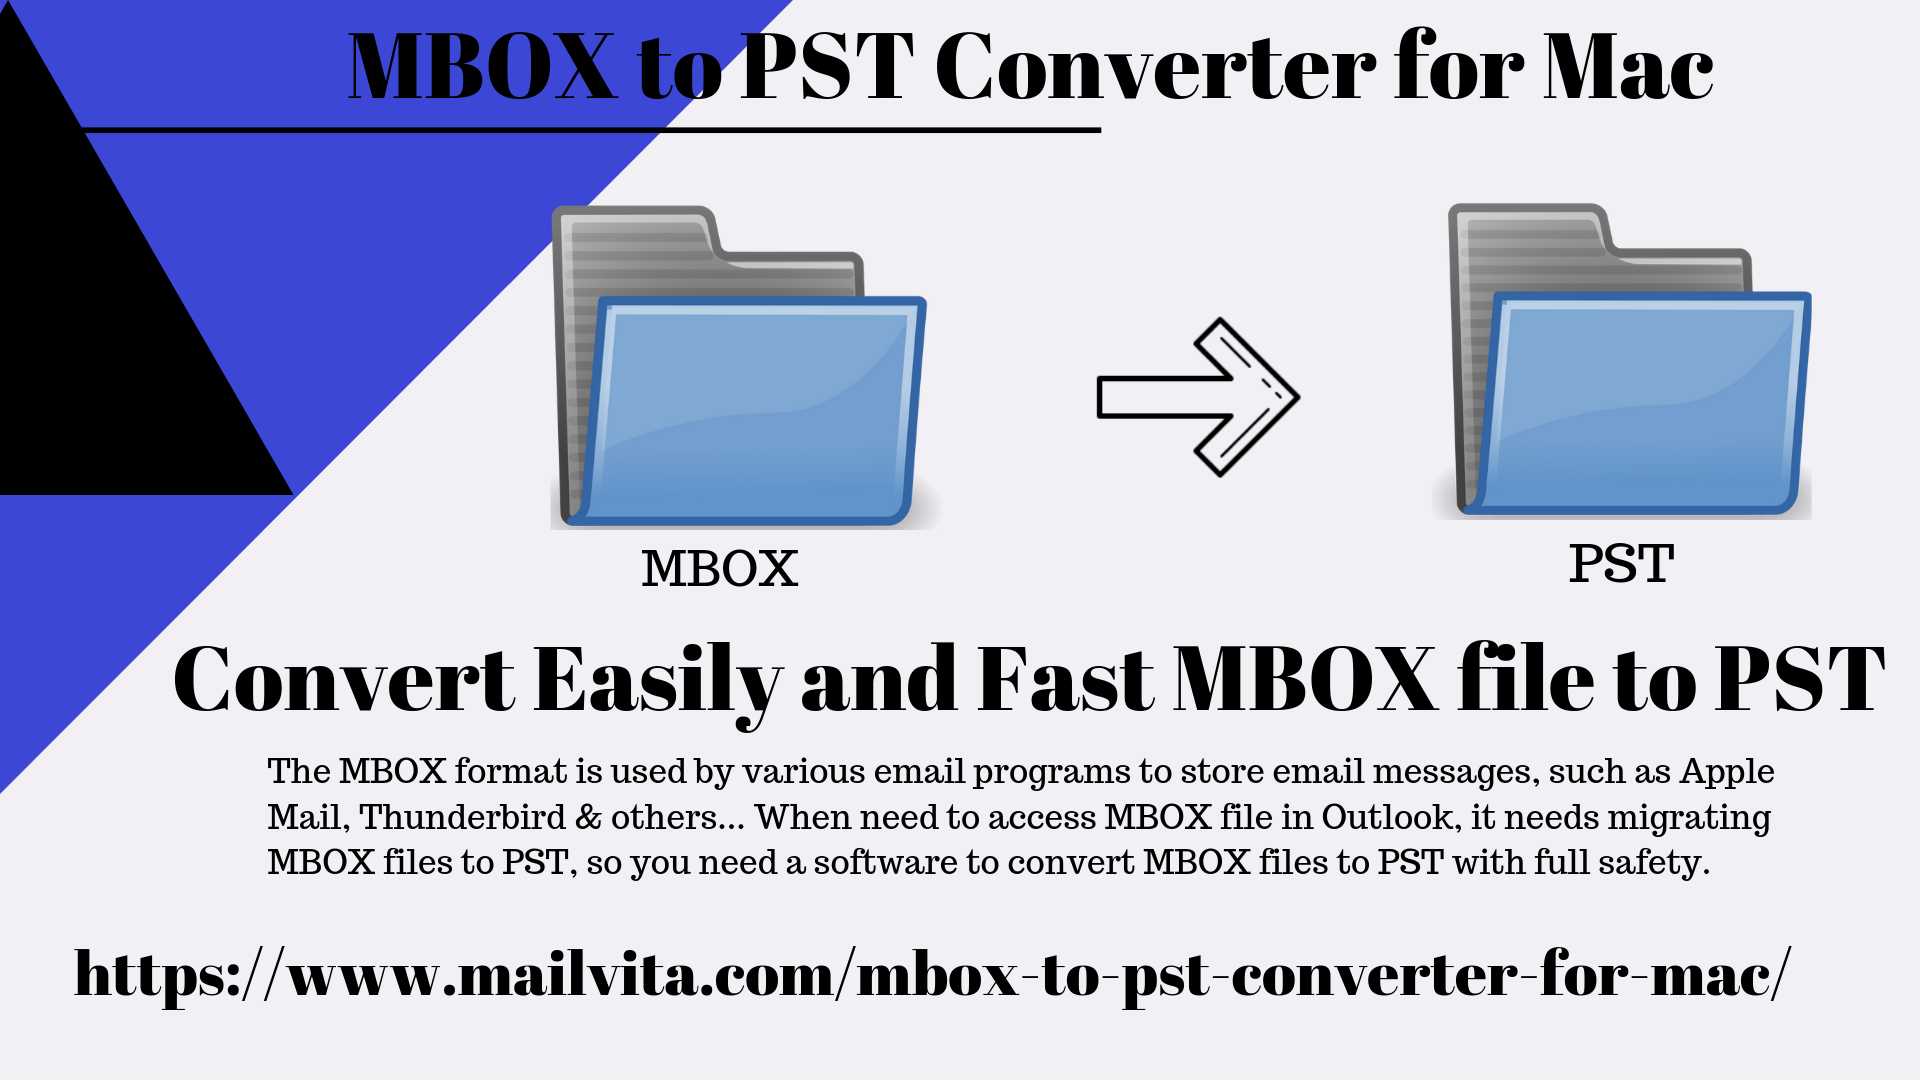 MBOX to PST Converter for Mac (3).png